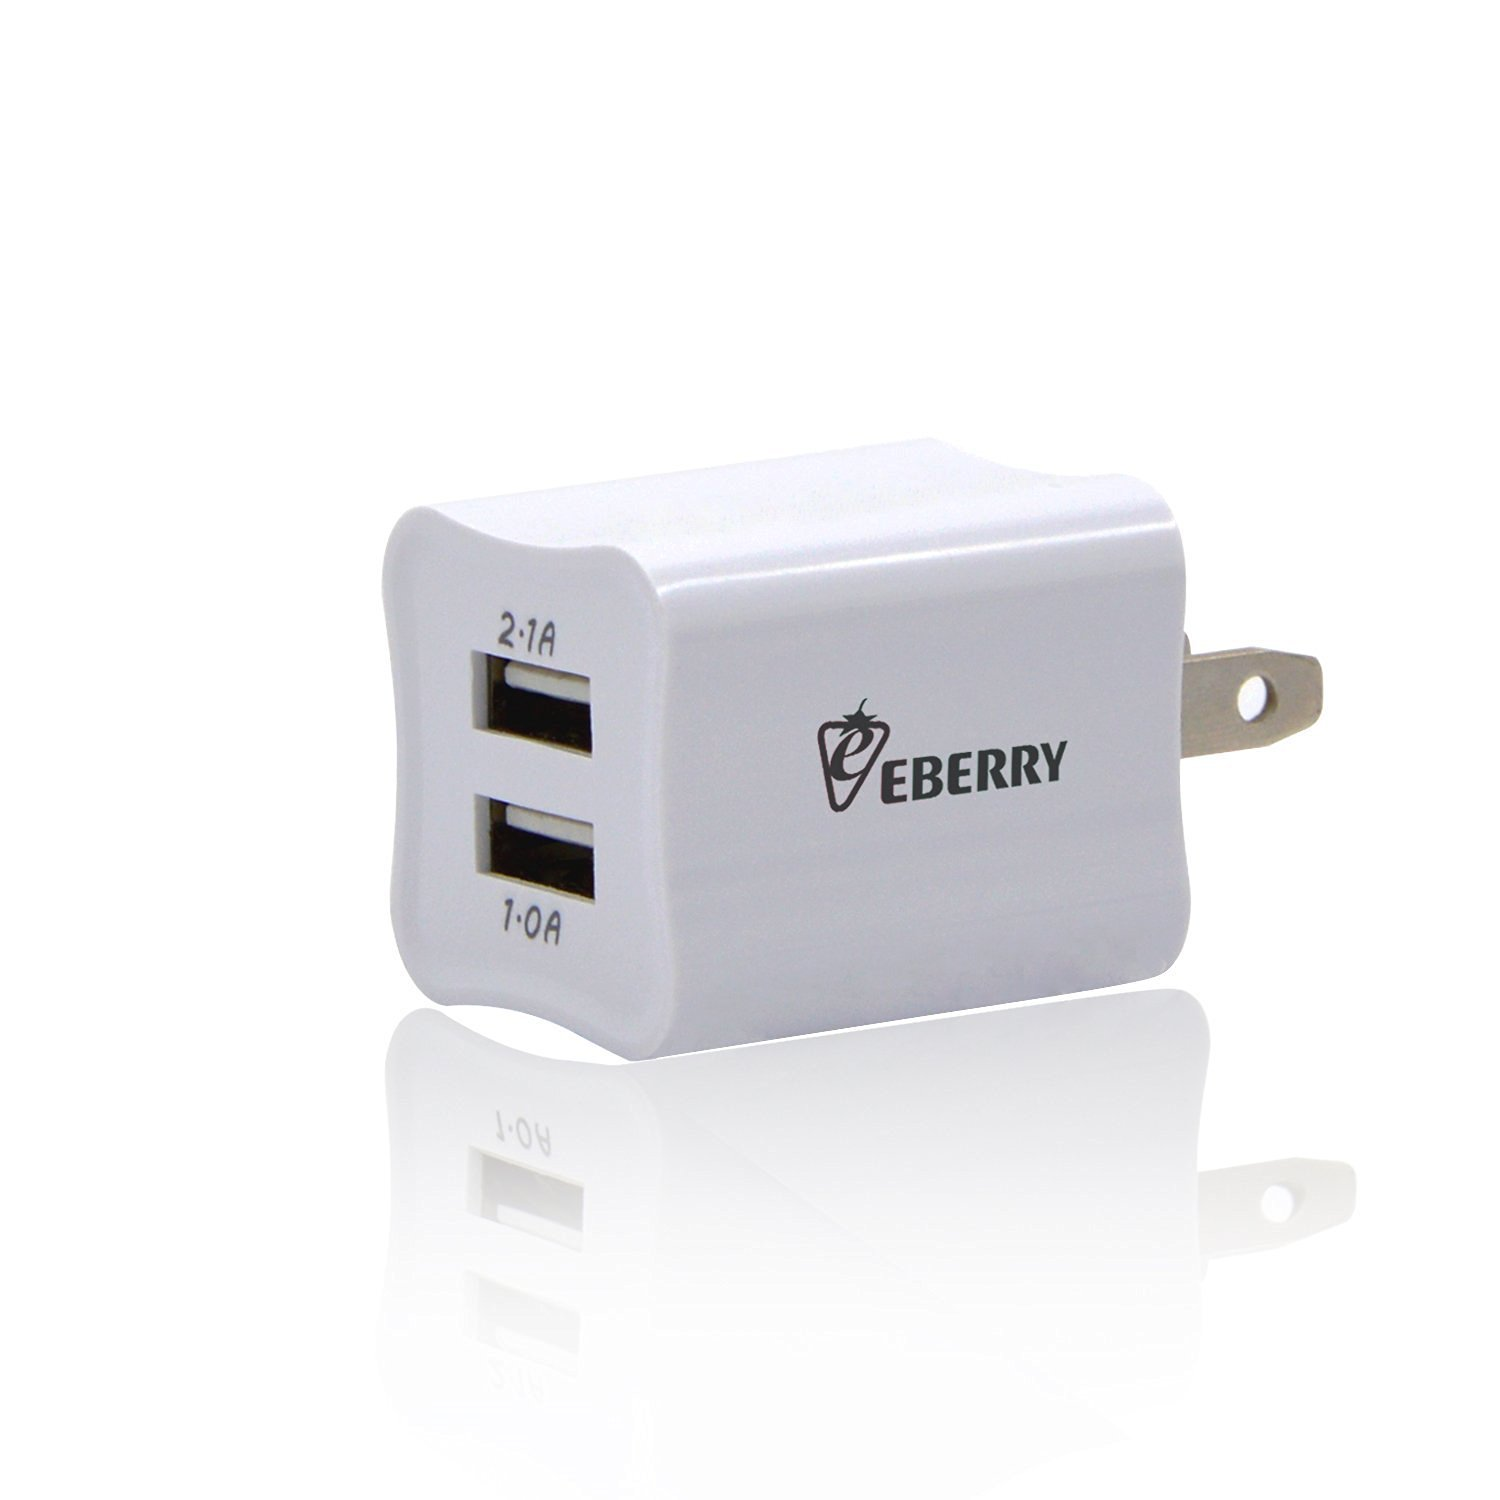 Wall Charger, eBerry 2-port Dual USB Wall Charger Made for iPhone 6s Plus 6s 5s 5 4s 4, iPad Pro 5 4 3, Samsung Galaxy S6 Edge S5 S4 S3 Note 5 4 3 and Most Android Phones - 5V 3.1A (2-port, White)